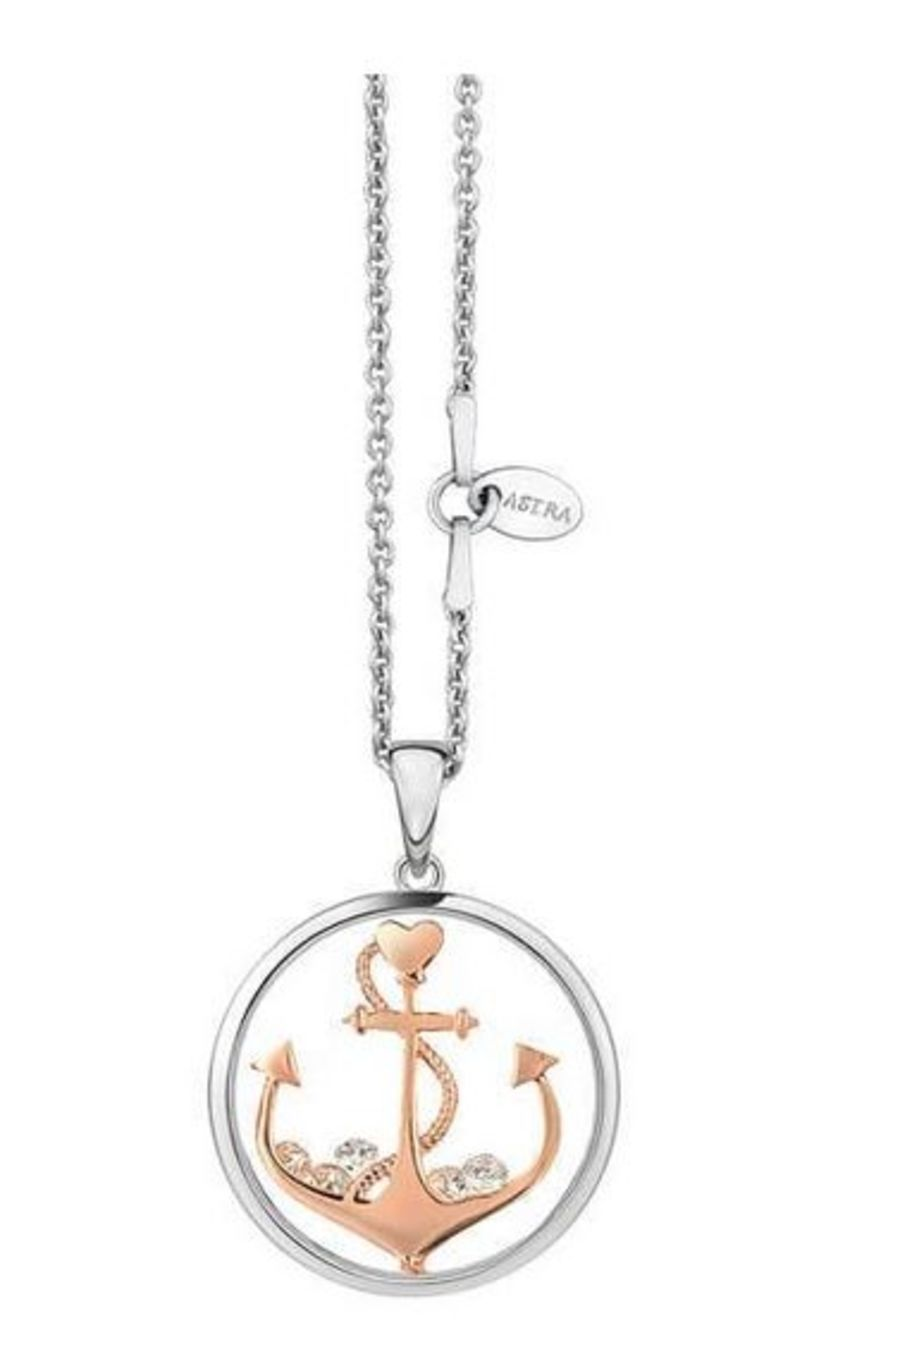 Anchor The Soul Silver Pendant by Astra Jewellery